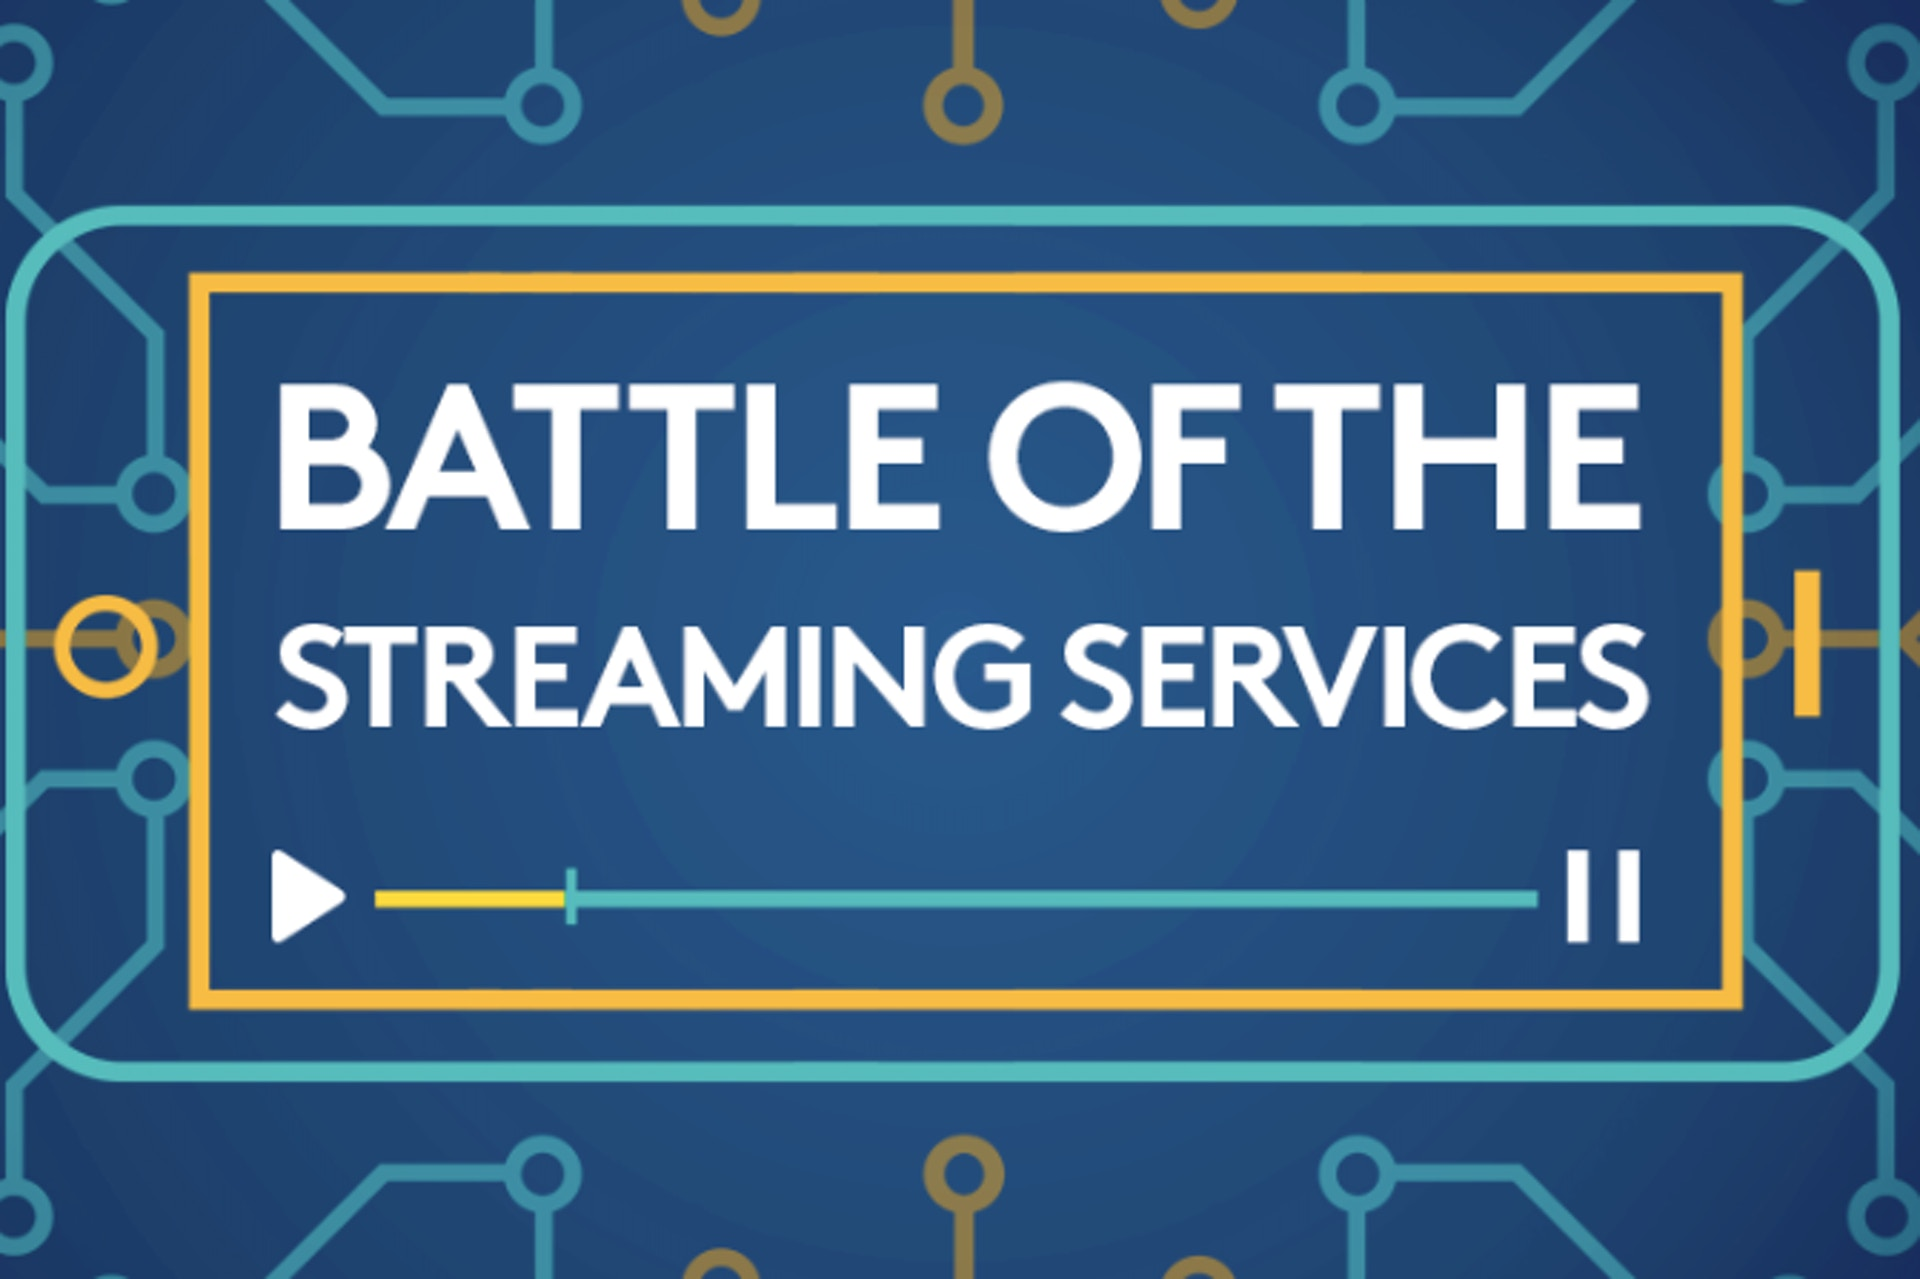 Illustrated phone graphic in blue and yellow outlines over a blue background showing data lines in blue and yellow. Text on graphic reads: Battle of the Streaming Services